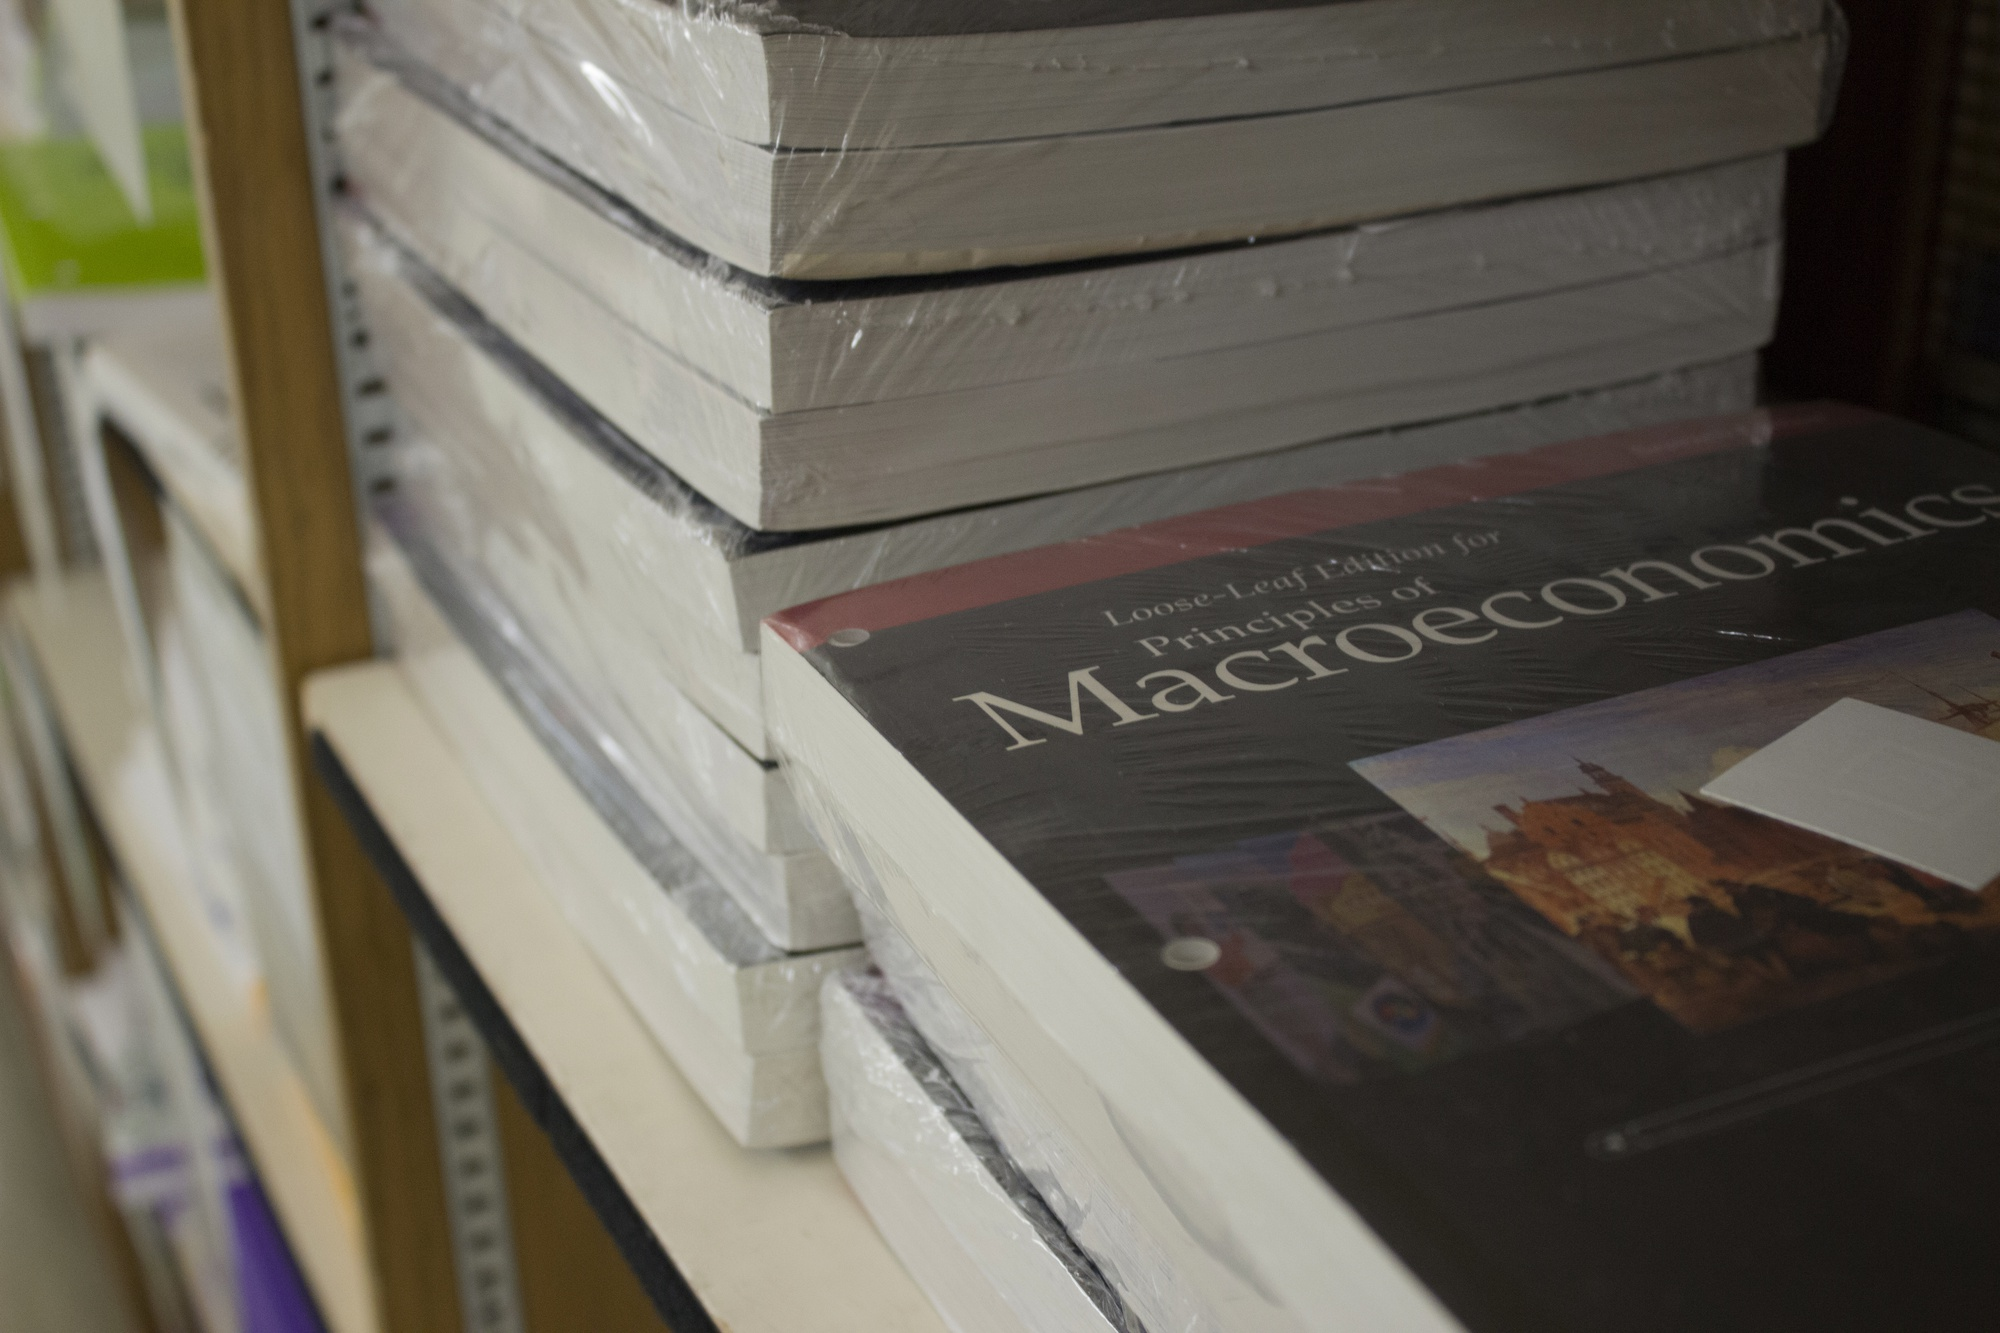 Students enrolled in Harvard's introductory economics course must now purchase loose-leaf copies of N. Gregory Mankiw's Principles of Microeconomics as well as a code to online materials. The course continues to face criticism for being too costly as a required and introductory course for Economics concentrators.